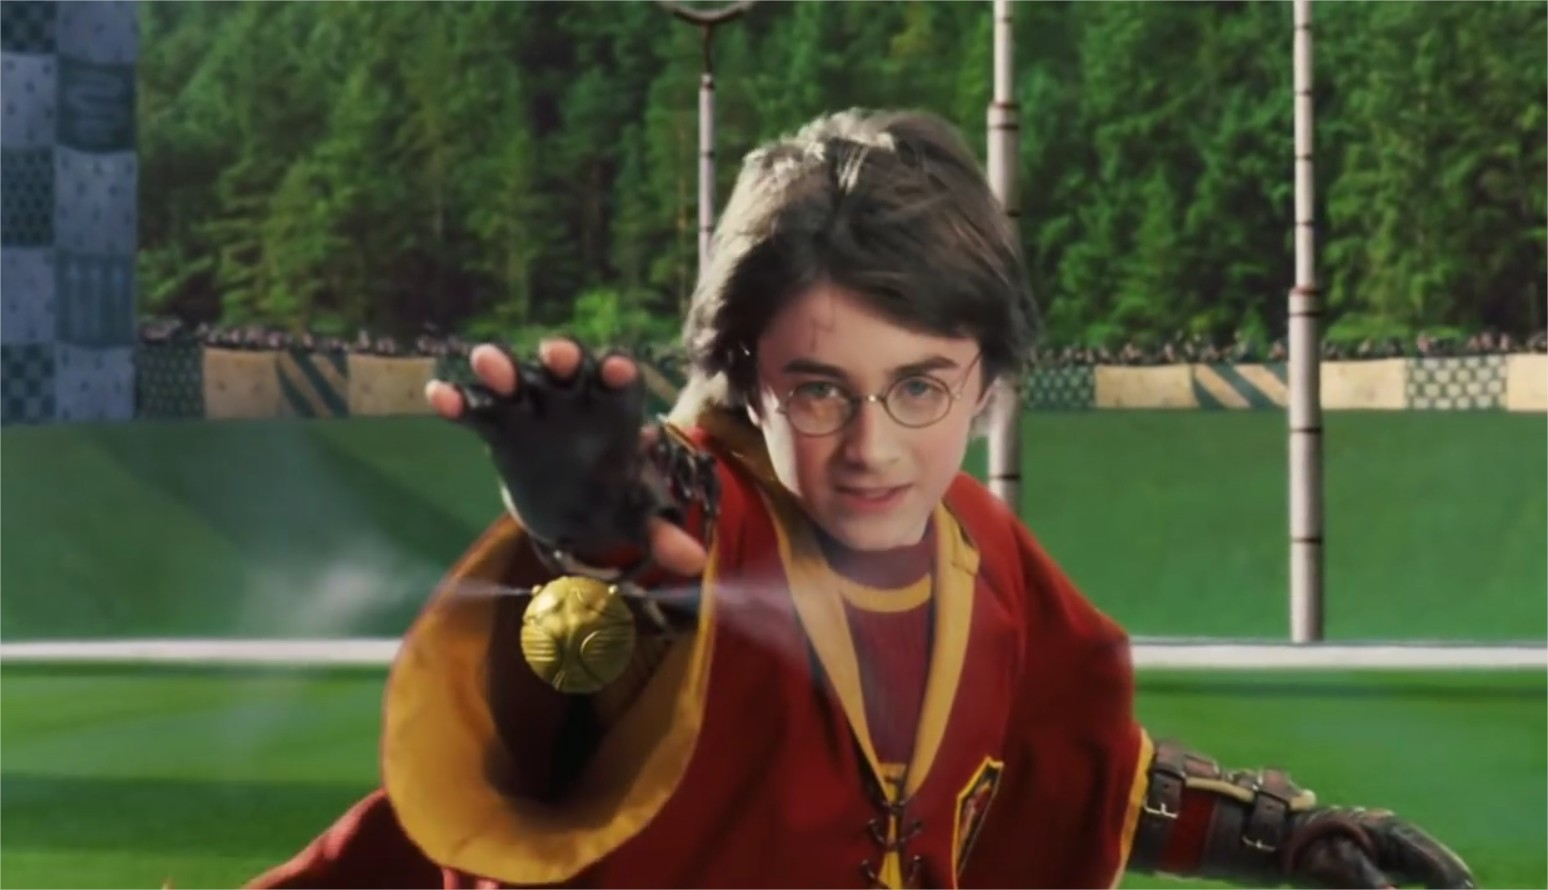 What Muggle Sports Would Hogwarts Students Play? - The-Leaky